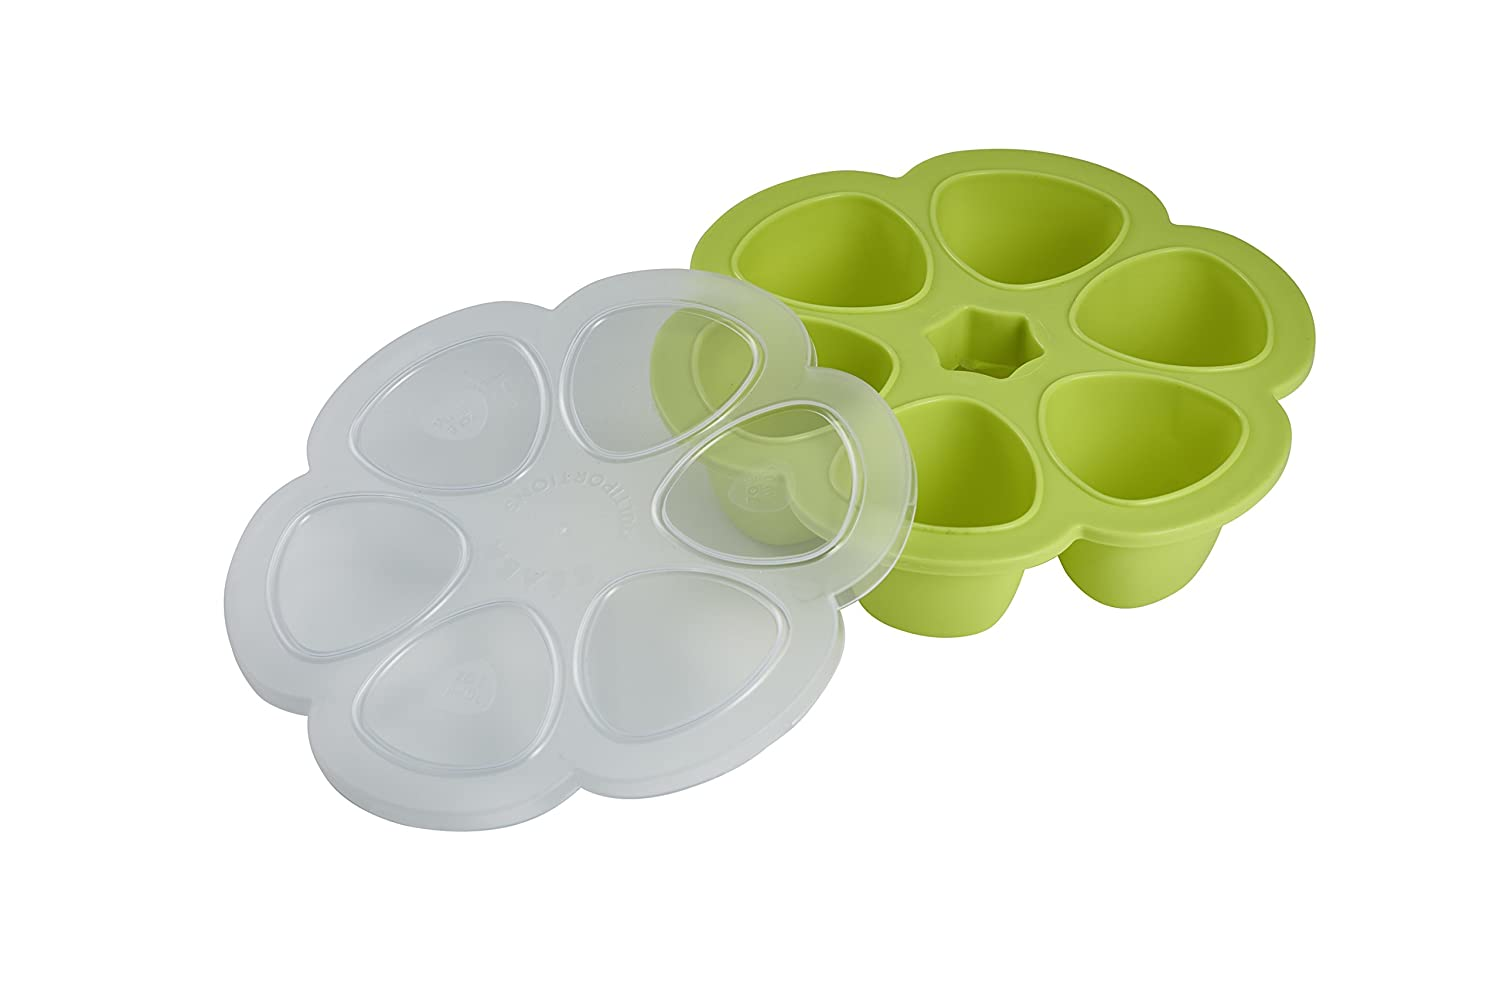 BEABA Silicone Multiportions Baby Food Tray, Oven Safe, Made in Italy, Neon, 3 oz